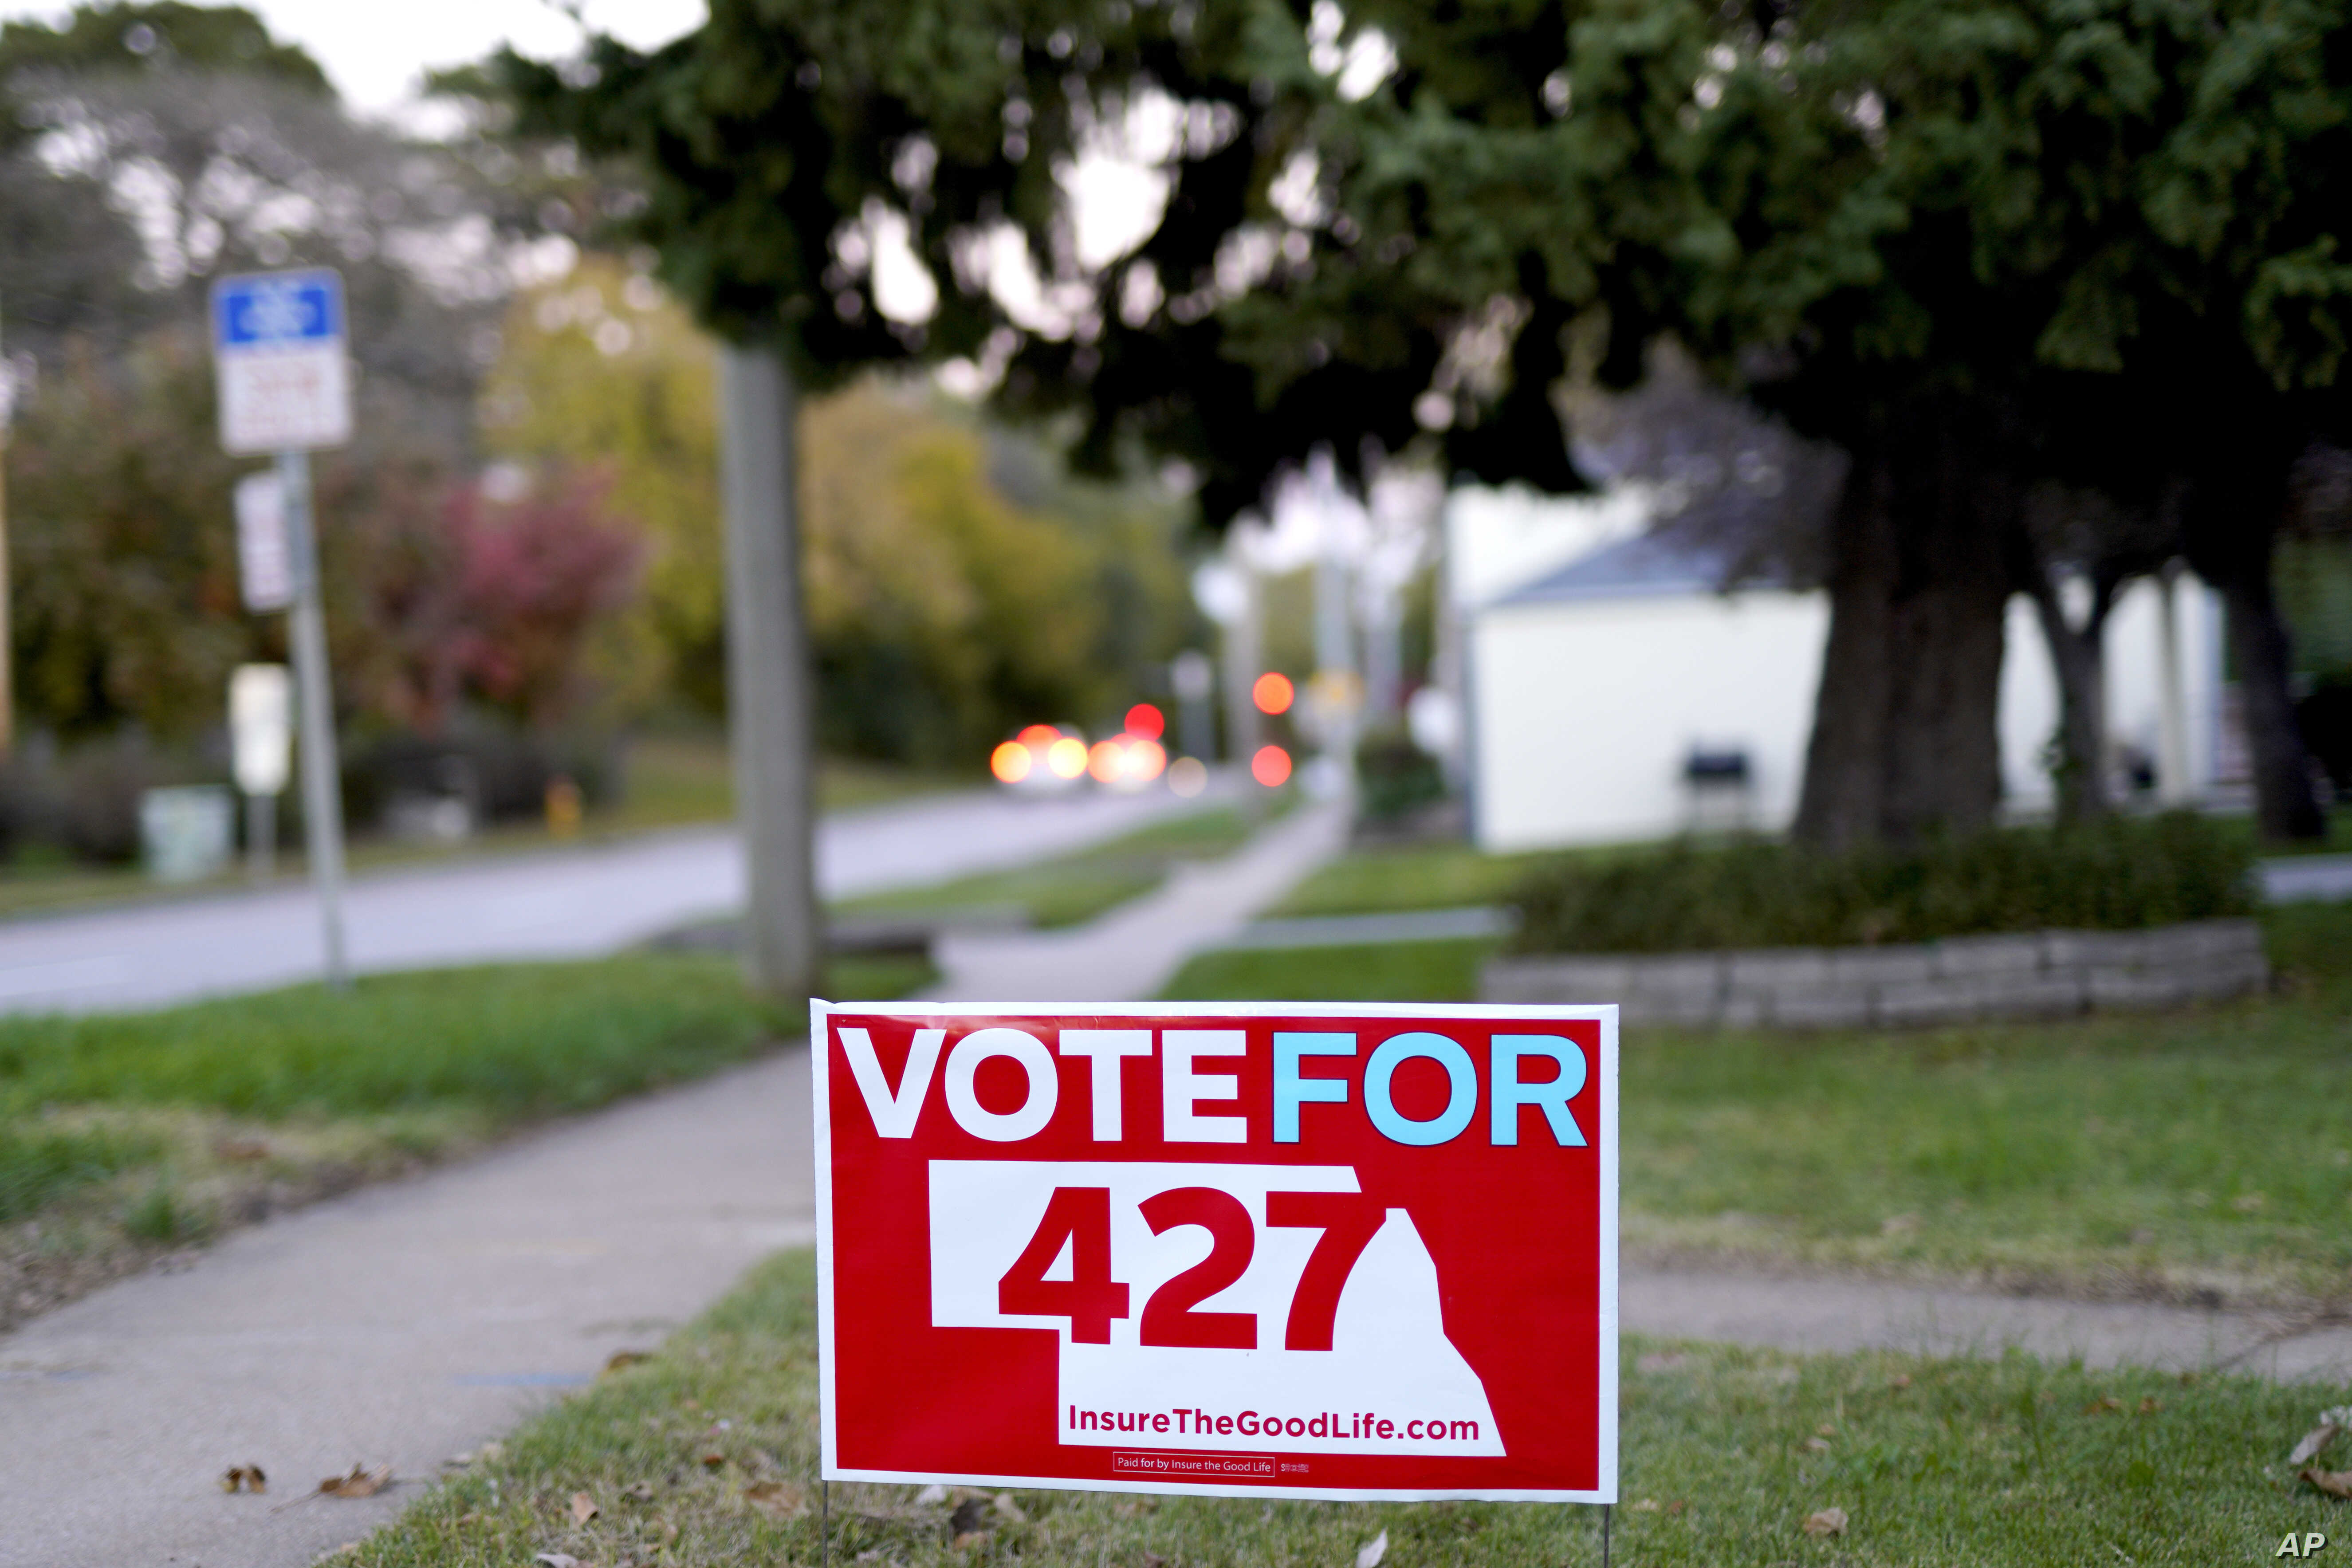 FILE - A yard sign promoting Initiative 427, the Medicaid Expansion Initiative, is seen in Omaha, Neb., Oct. 17, 2018. For nearly a decade, opposition to Obama's health care law has been a winning message for Nebraska Republicans, helping them take e...